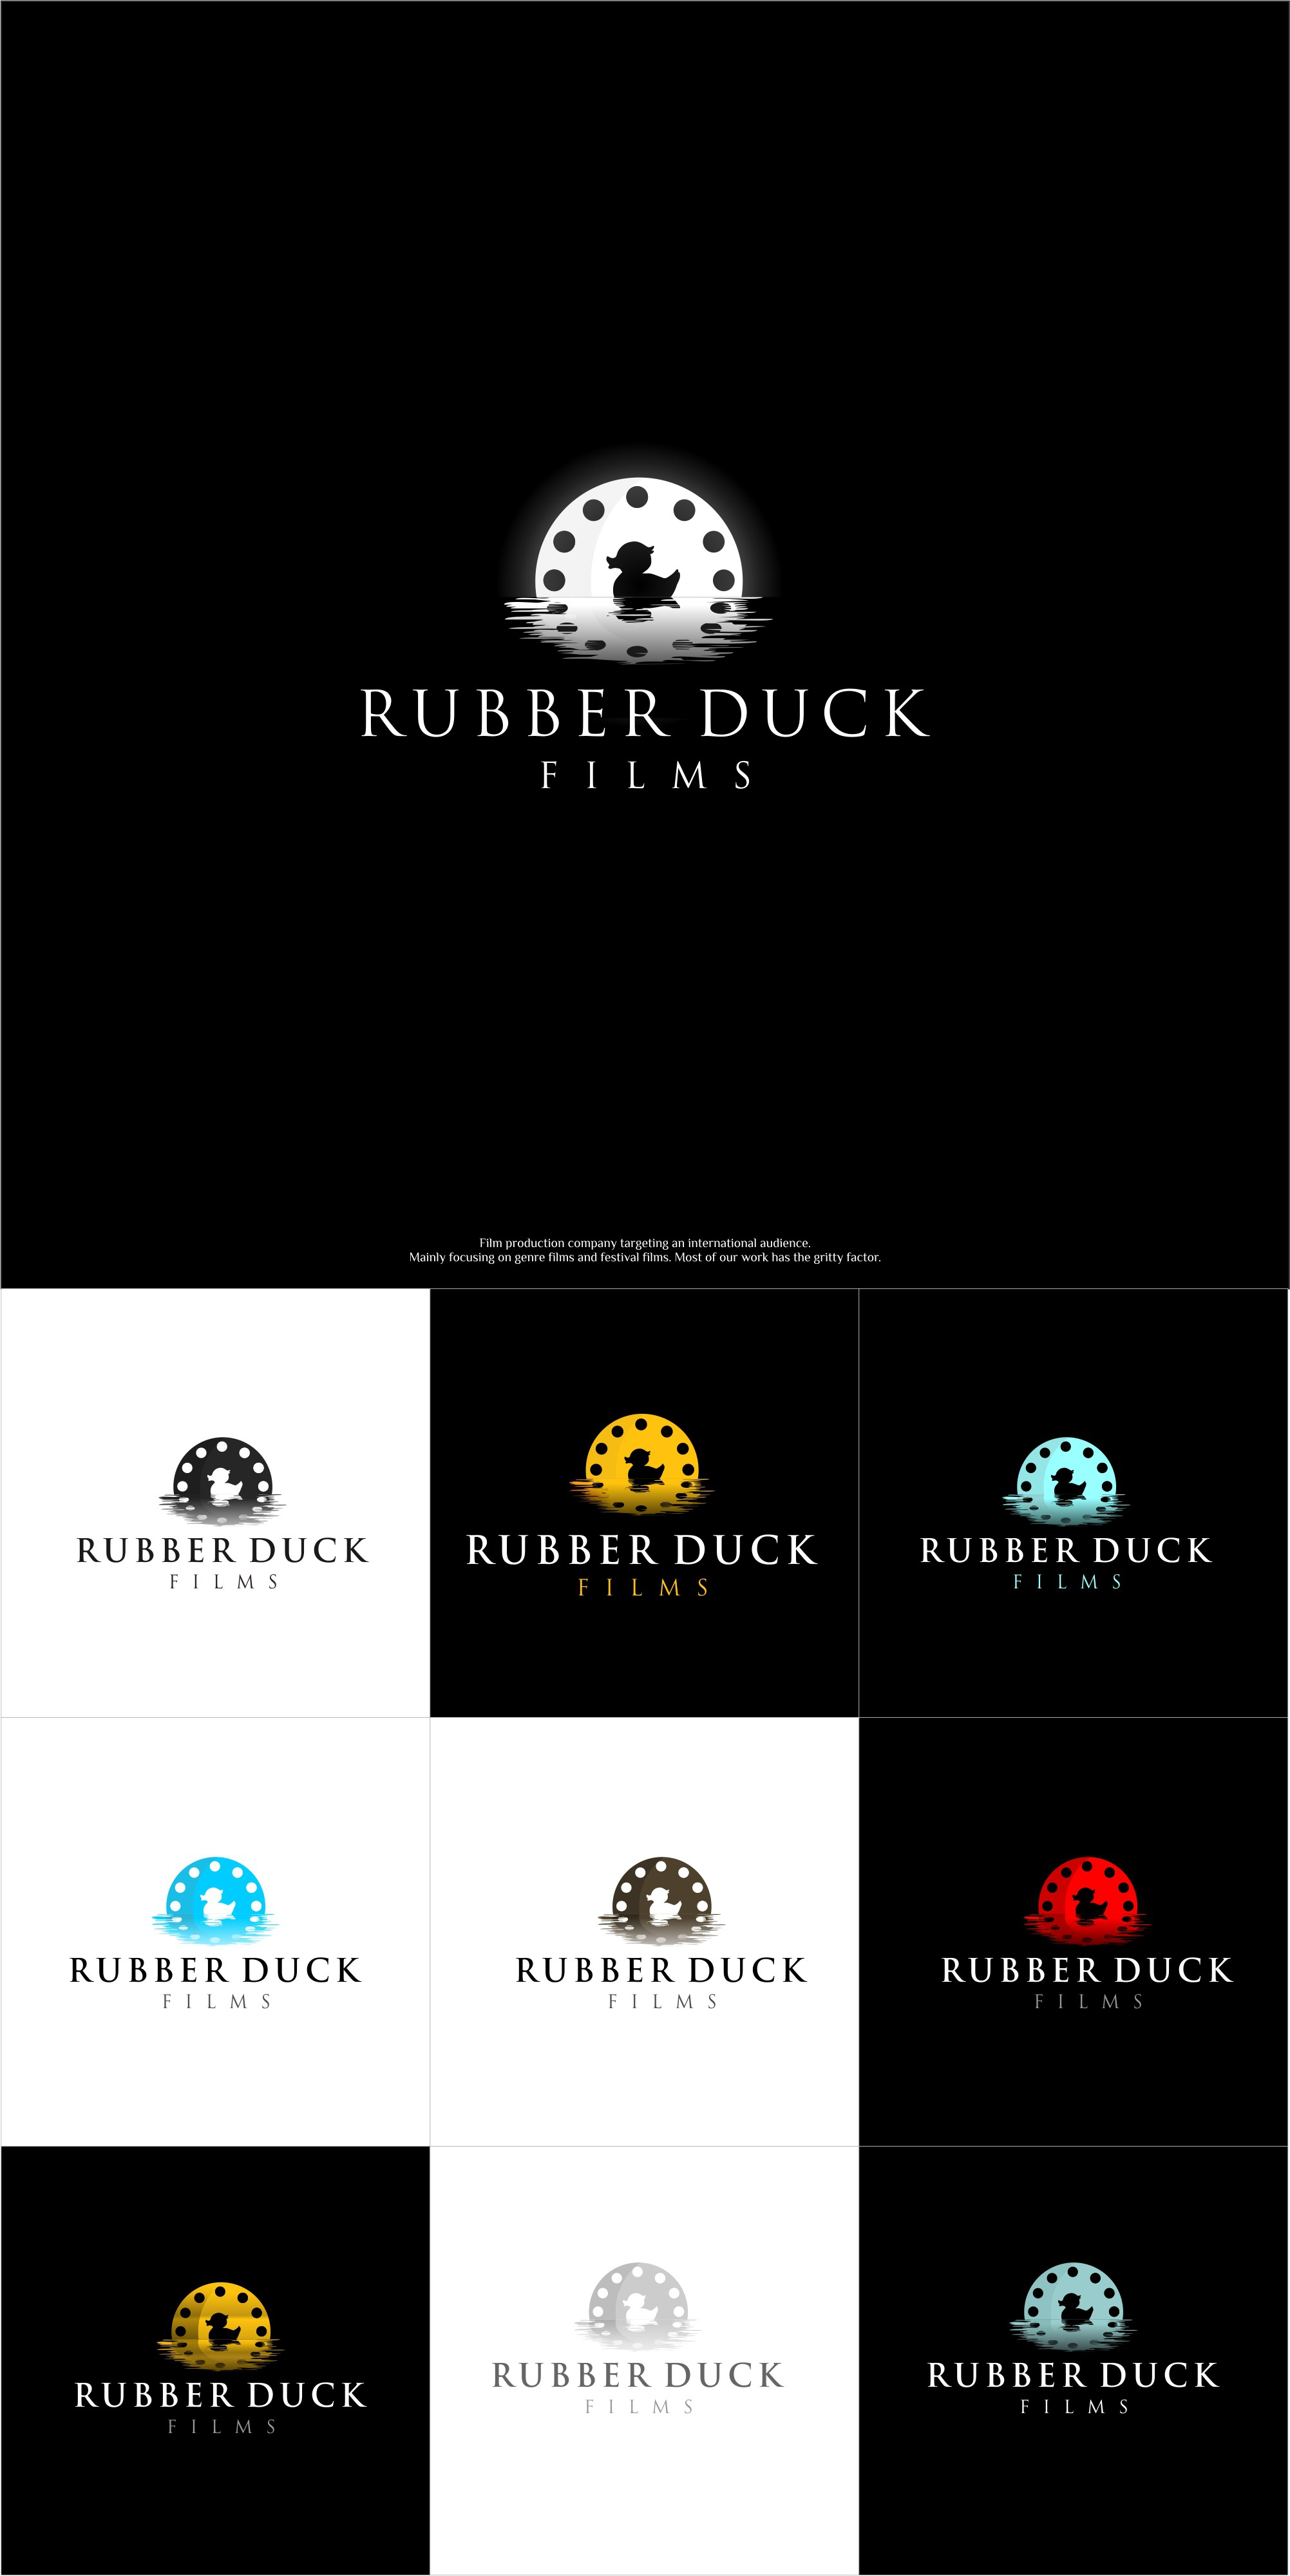 Rubber Duck Films